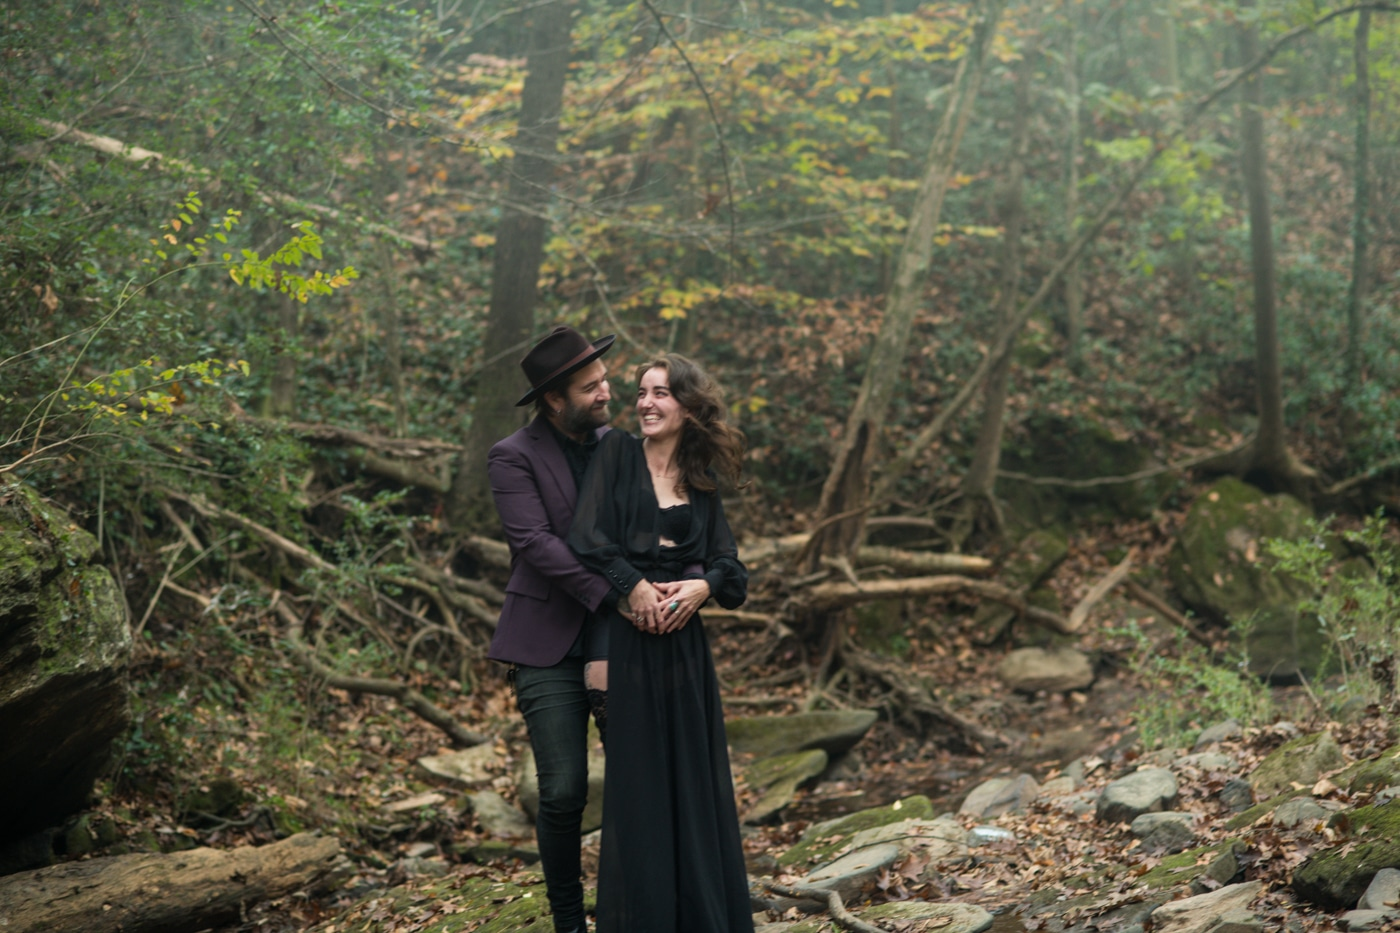 Atlanta engagement session with witchy vibe